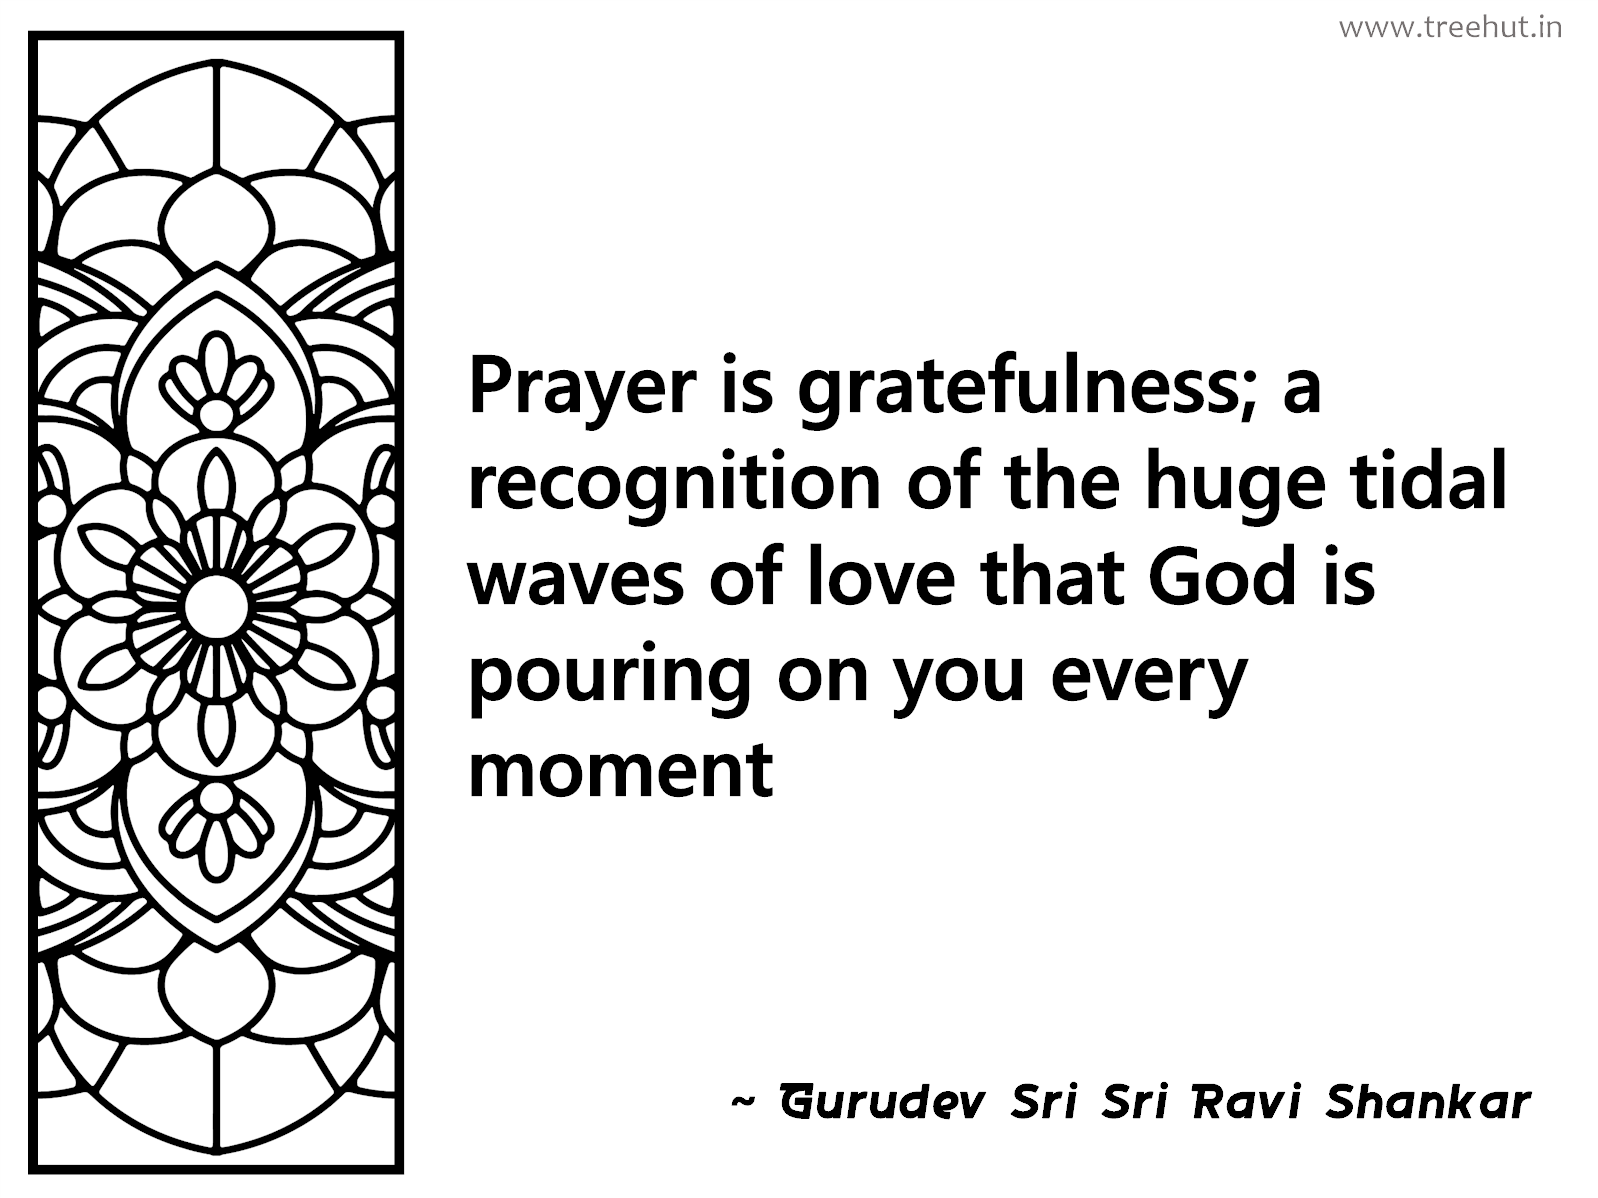 Prayer is gratefulness; a recognition of the huge tidal waves of love that God is pouring on you every moment Inspirational Quote by Gurudev Sri Sri Ravi Shankar, coloring pages